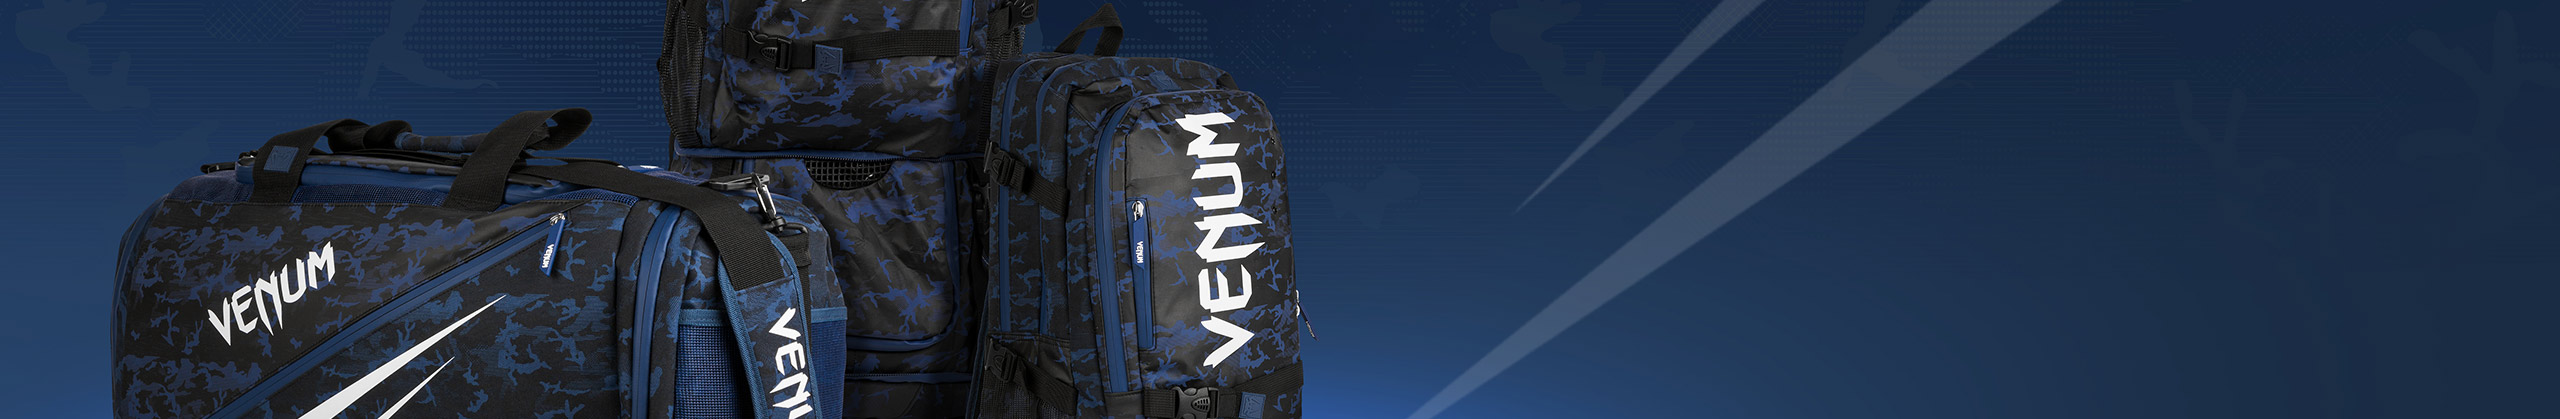 Venum Accessories for Men | Venum.com Россия